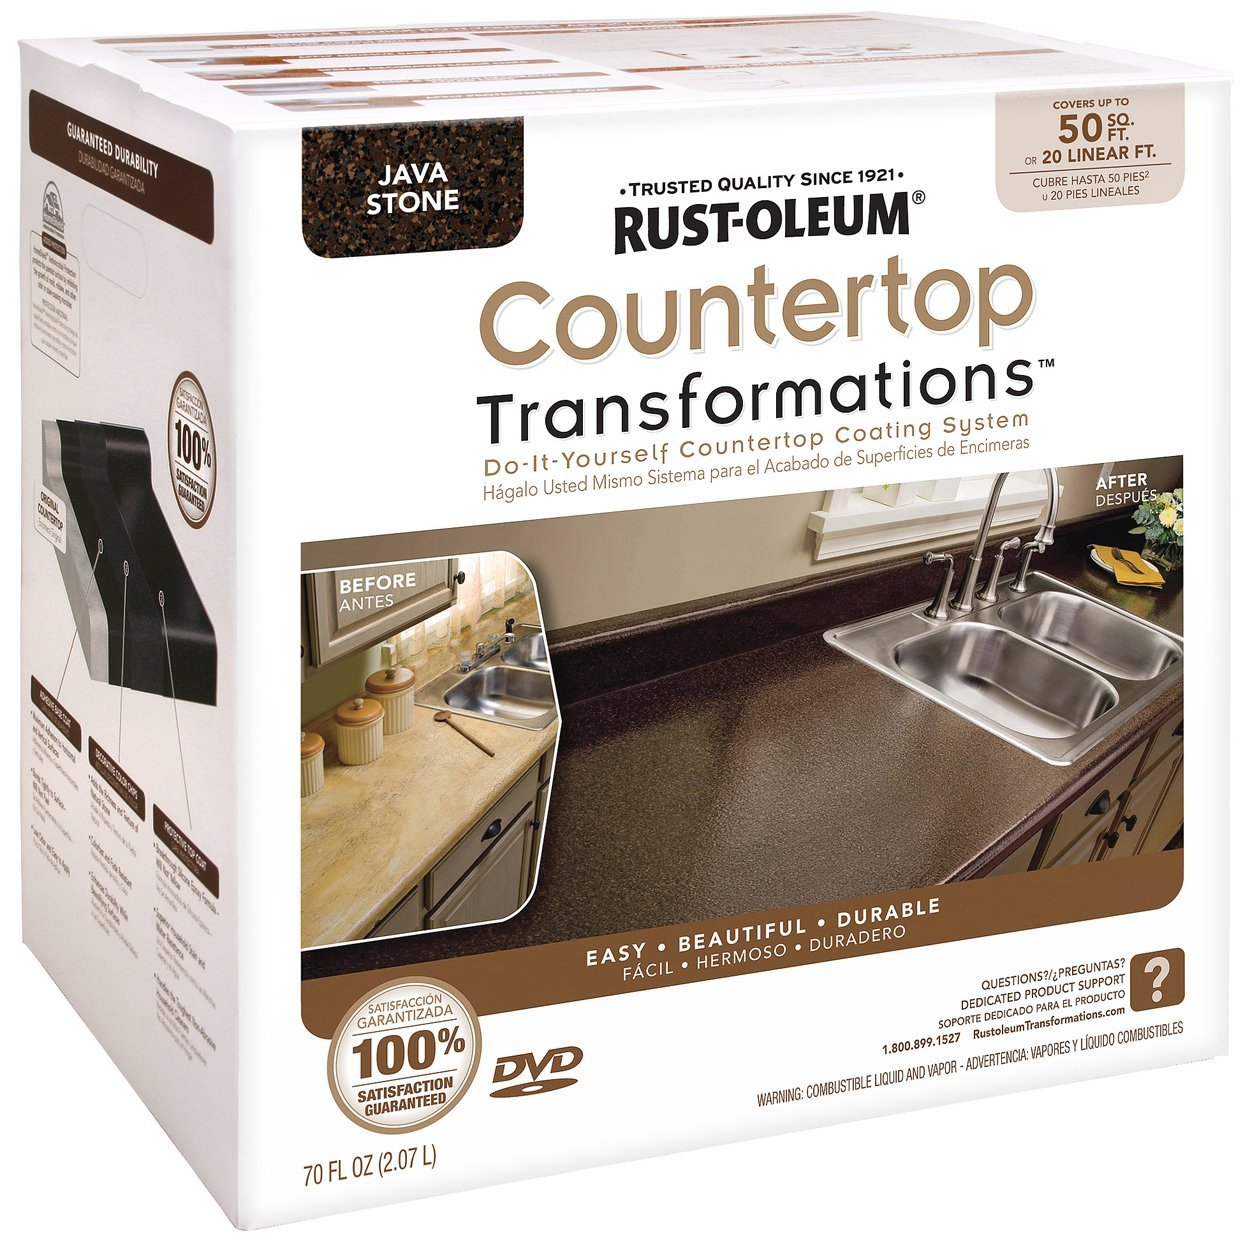 RustOleum Countertop Transformations